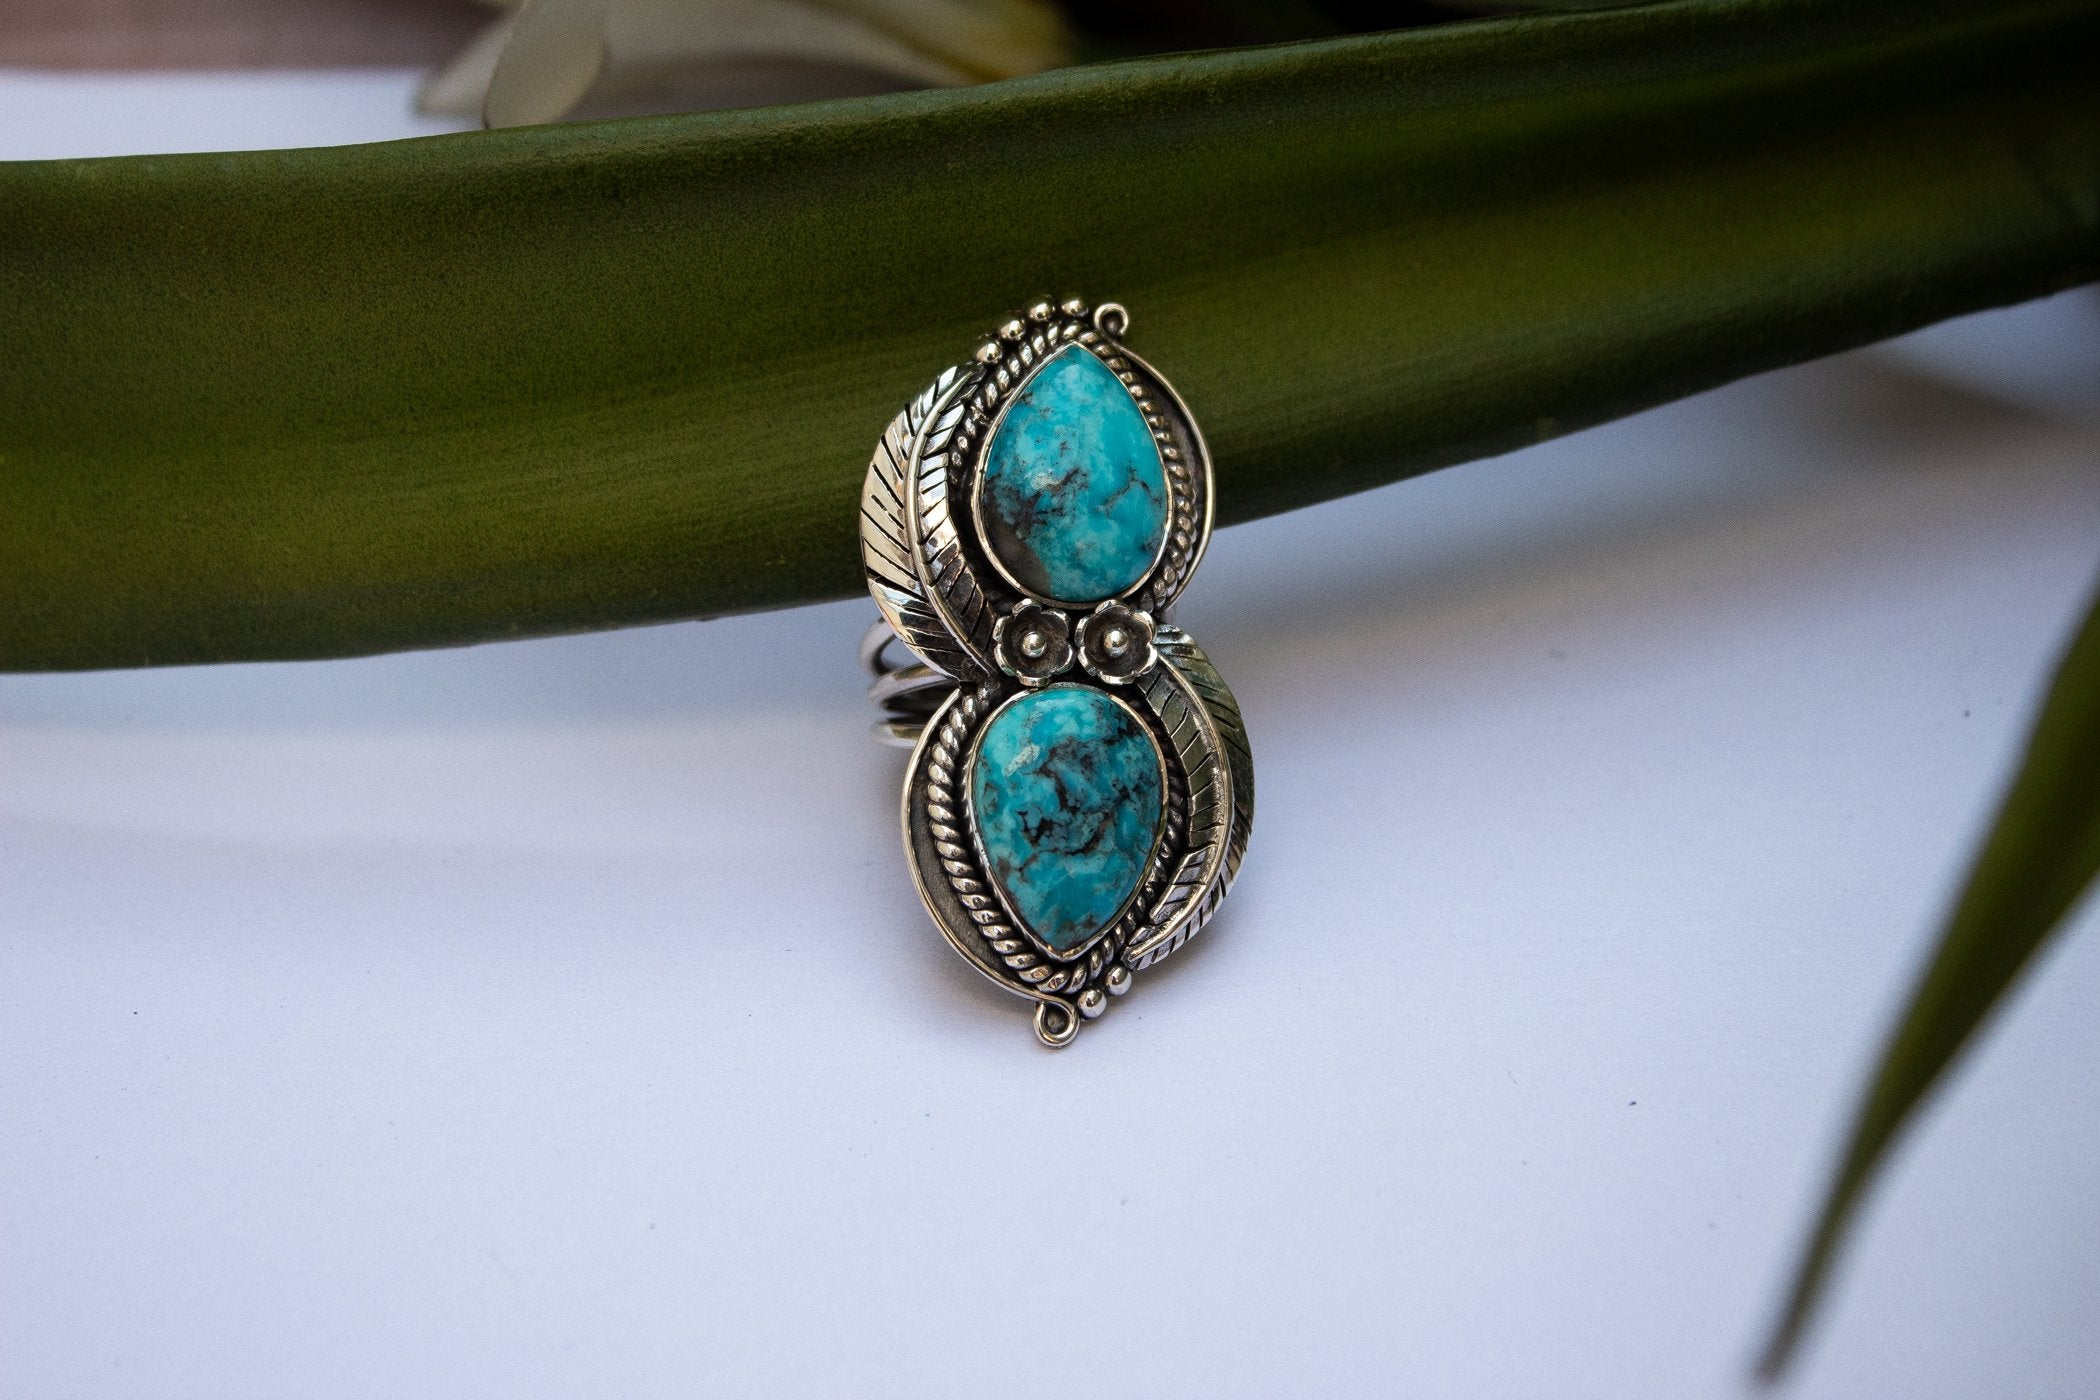 Handmade Arizona Blue Turquoise Floral and Leaf Ring AR-2037 - Its Ambra